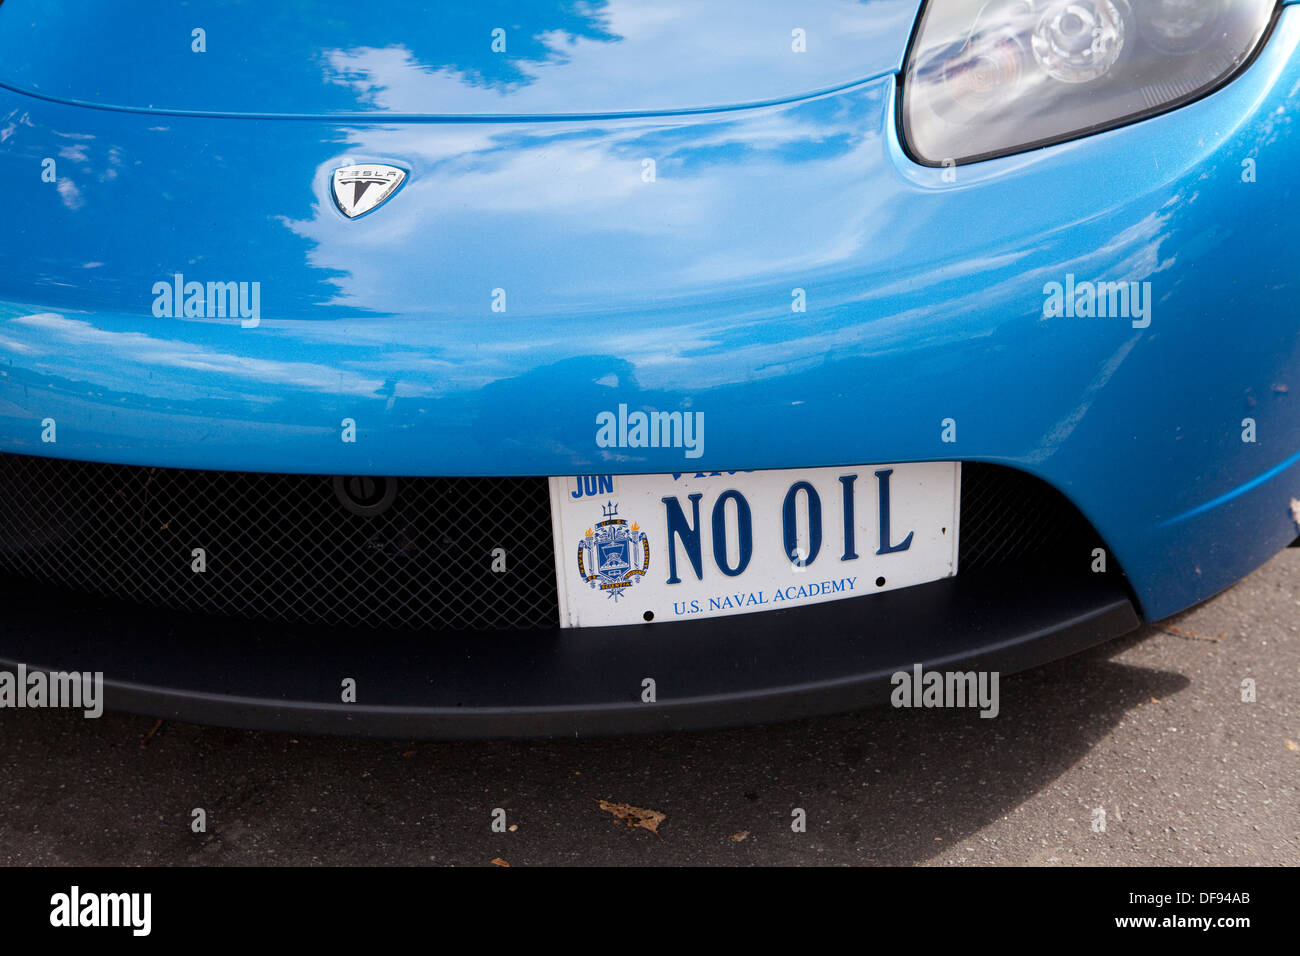 Tesla Roadster electric car with 'NO OIL' license plate - Stock Image